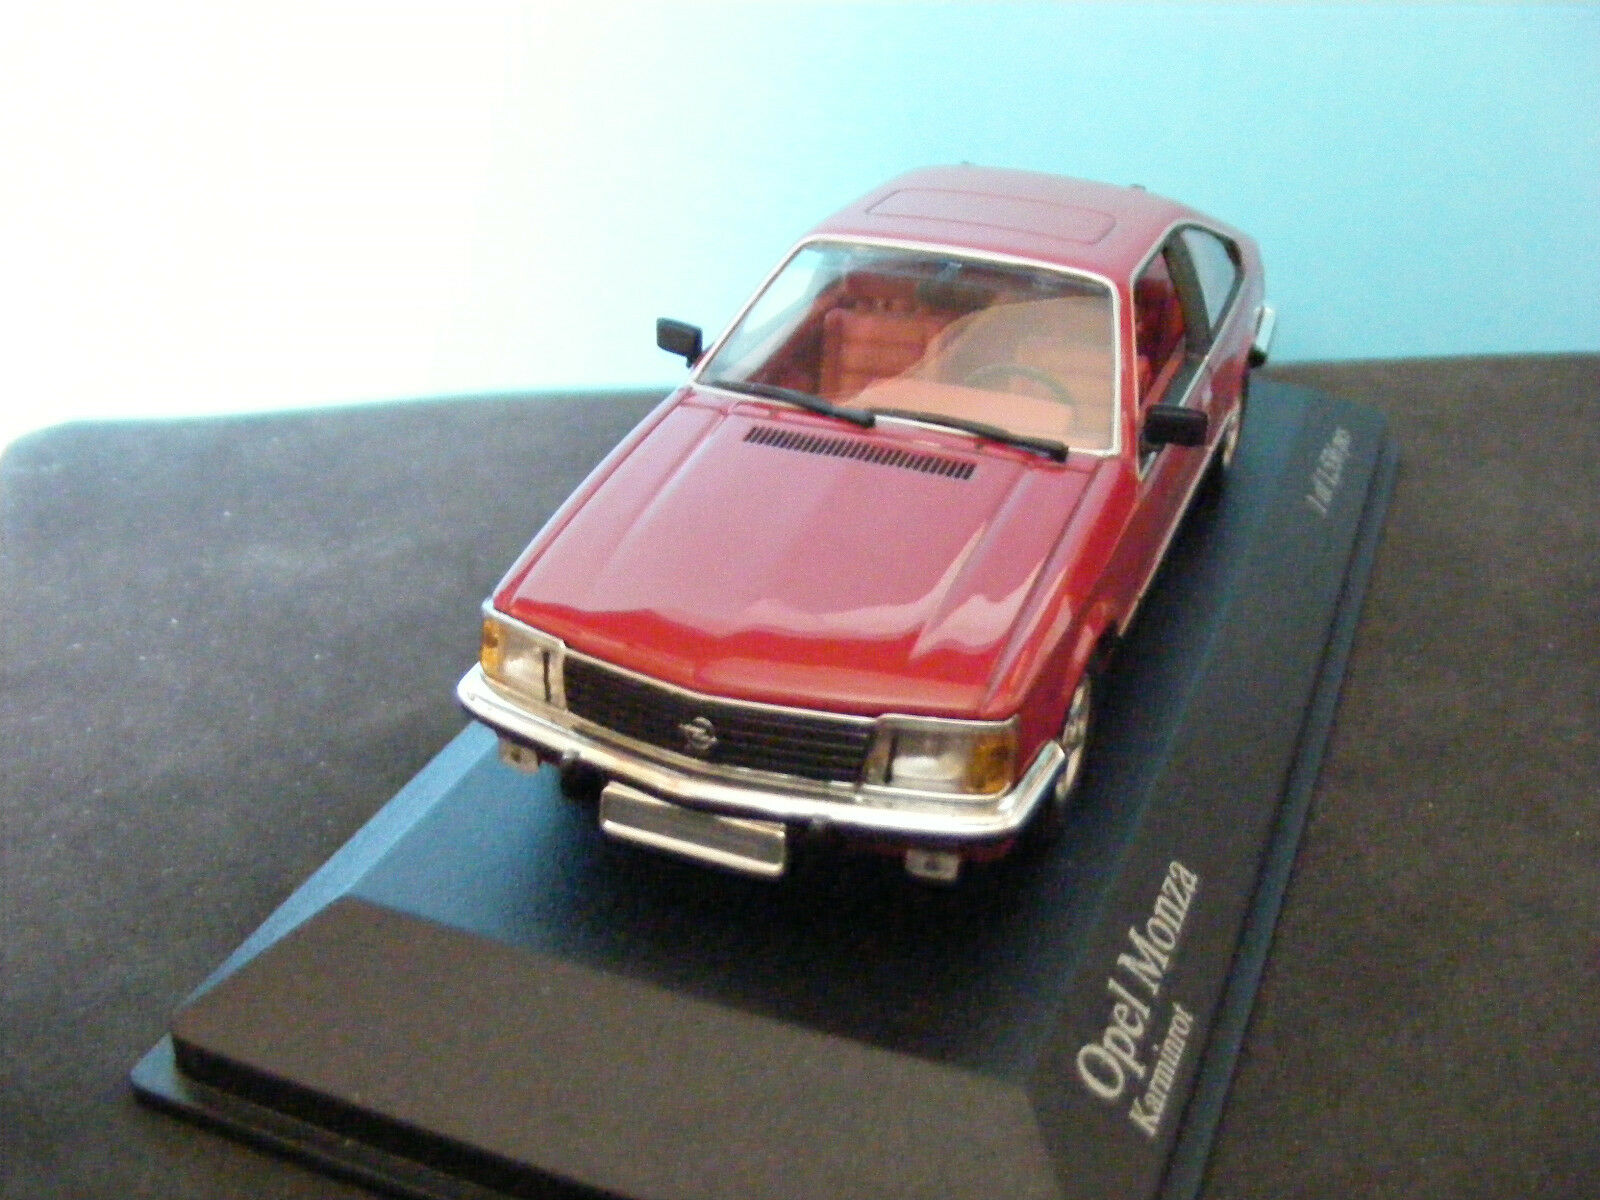 OPEL MONZA 1980 WOW EXTREMELY RARE MINICHAMPS 1 43 ONLY 1536 PCS WORLDWIDE NLA